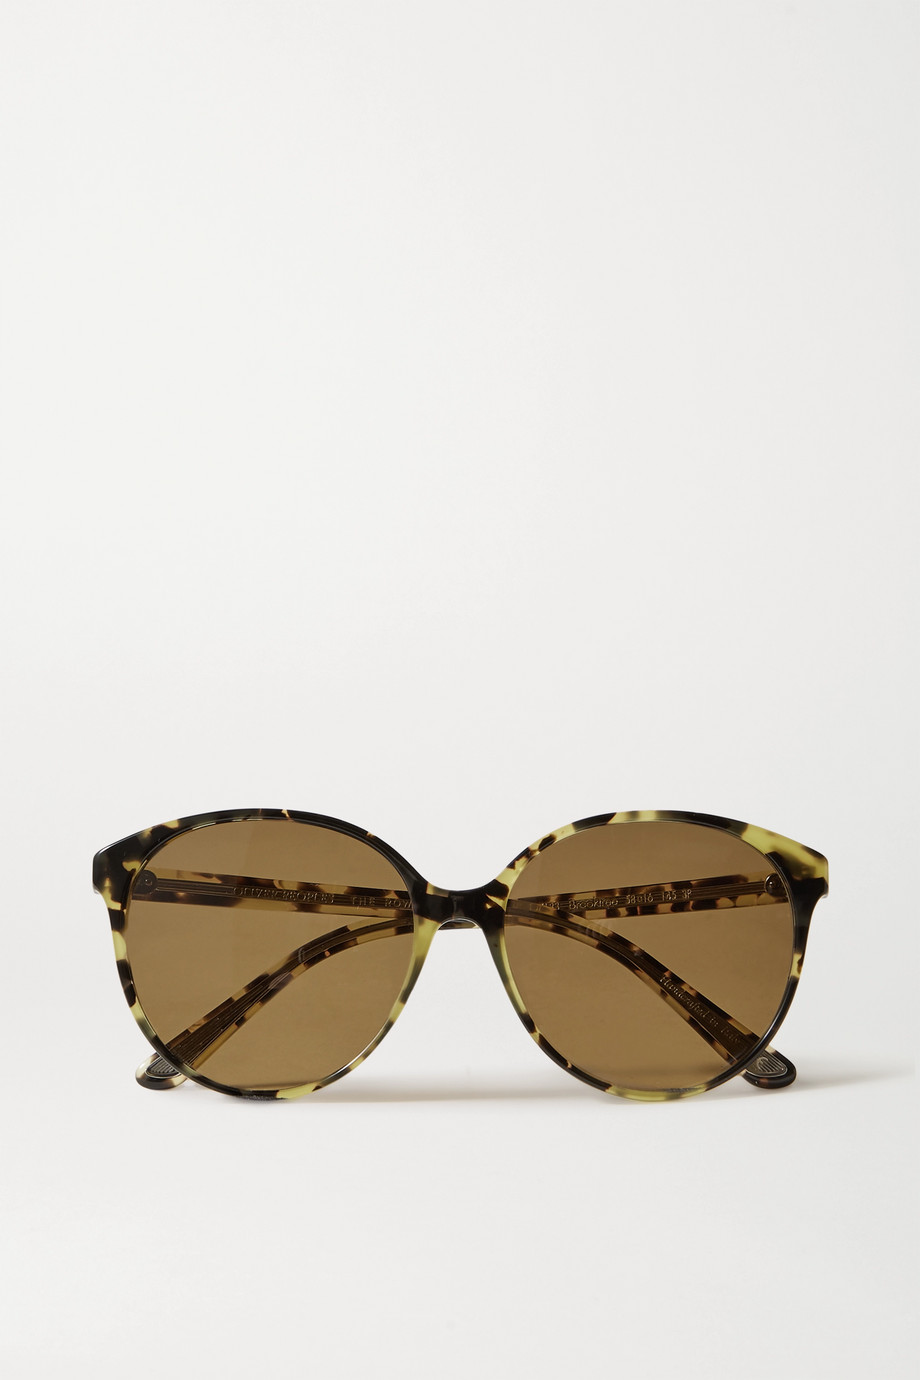 The Row + Oliver Peoples Brooktree round-frame tortoiseshell acetate sunglasses